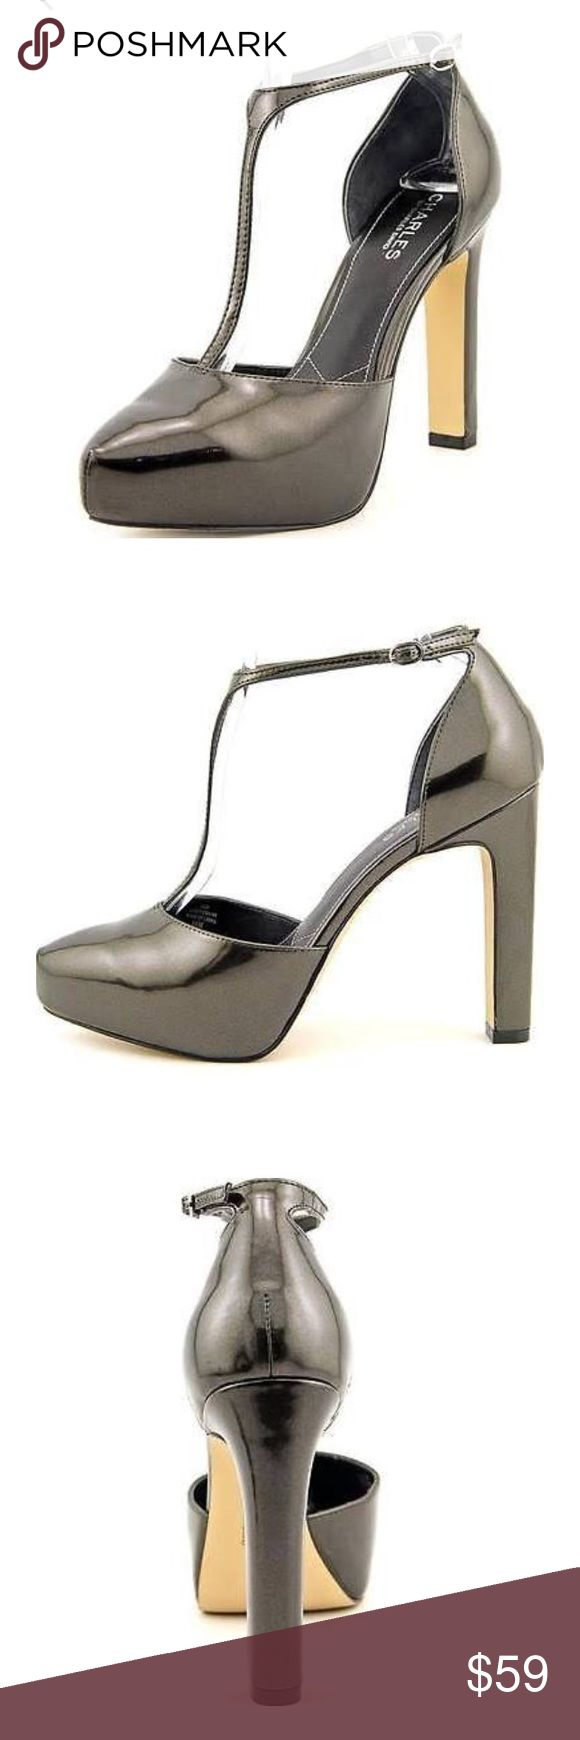 """Charles by Charles David pumps size 8 M A pewter pearl patent t-strap platform Floyd from Charles by Charles David! Pearlized faux patent leather upper T-strap styling with an adjustable buckle Almond toe 1"""" hidden platform, 4½"""" covered heel Synthetic sole Charles David Shoes Platforms"""